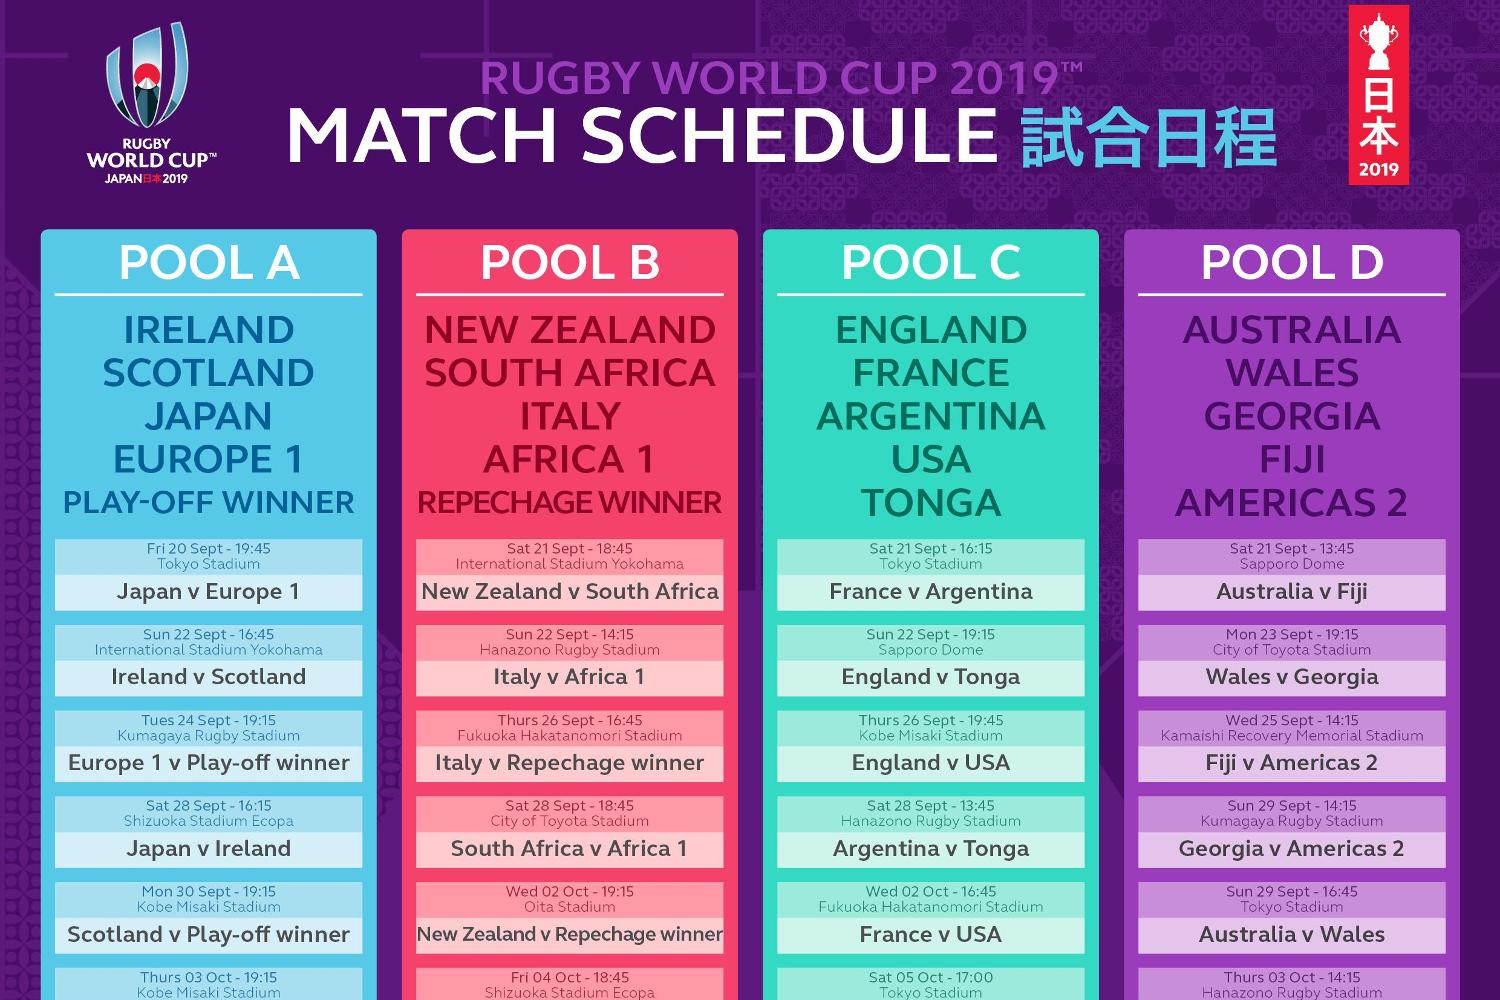 Rugby World Cup 2019 match schedule announced as fans start